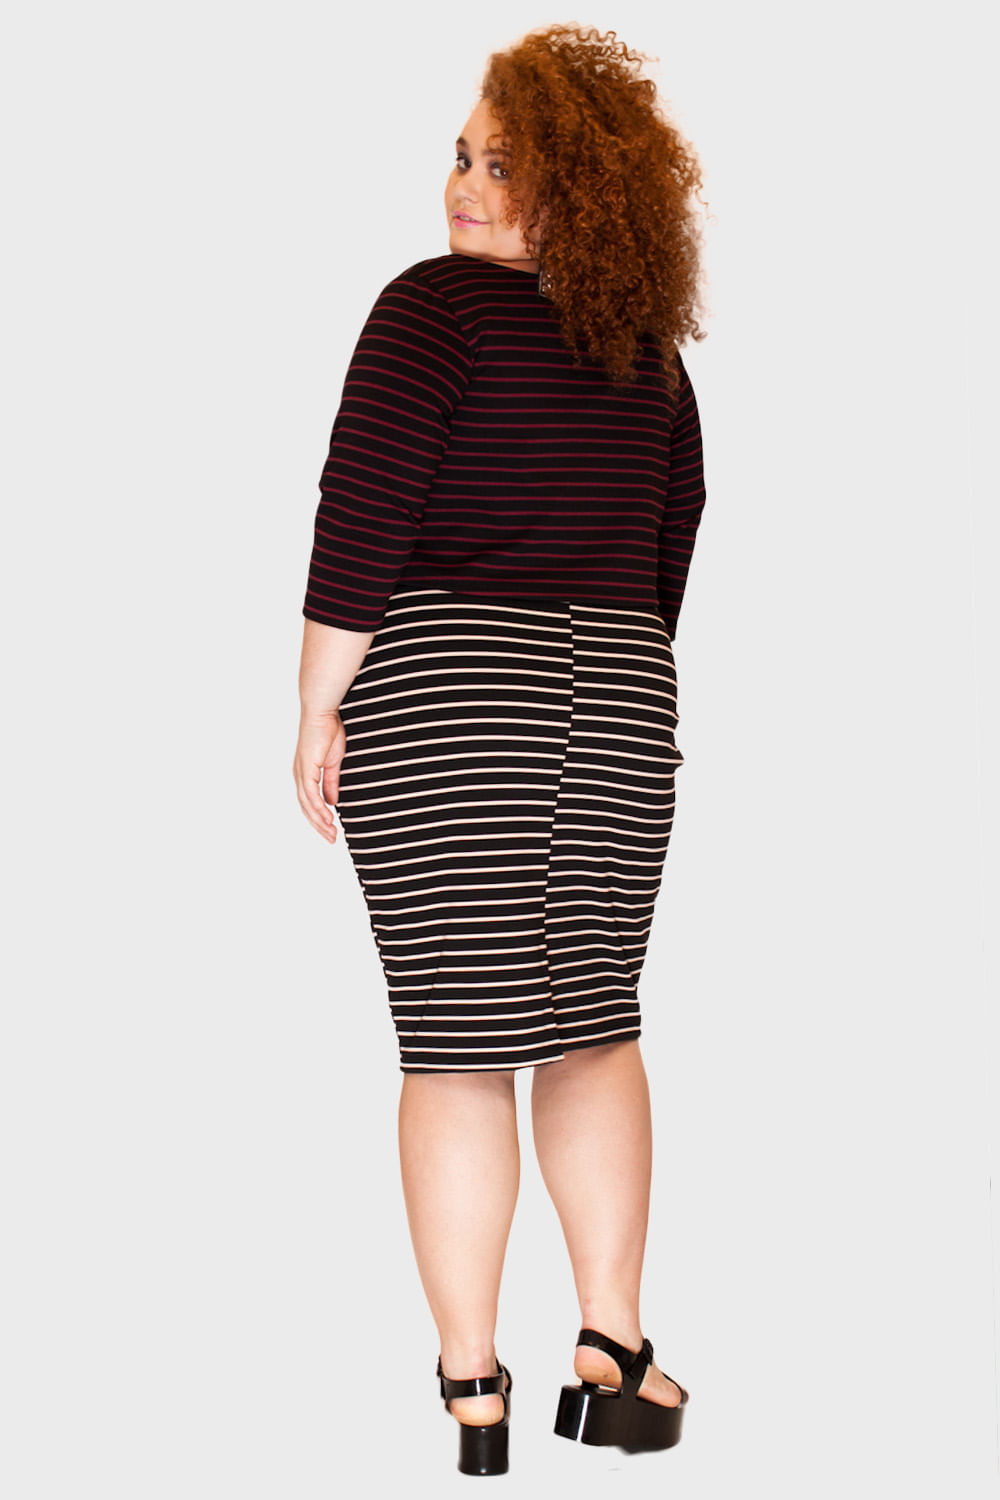 Cropped-Listrado-Plus-Size_T1